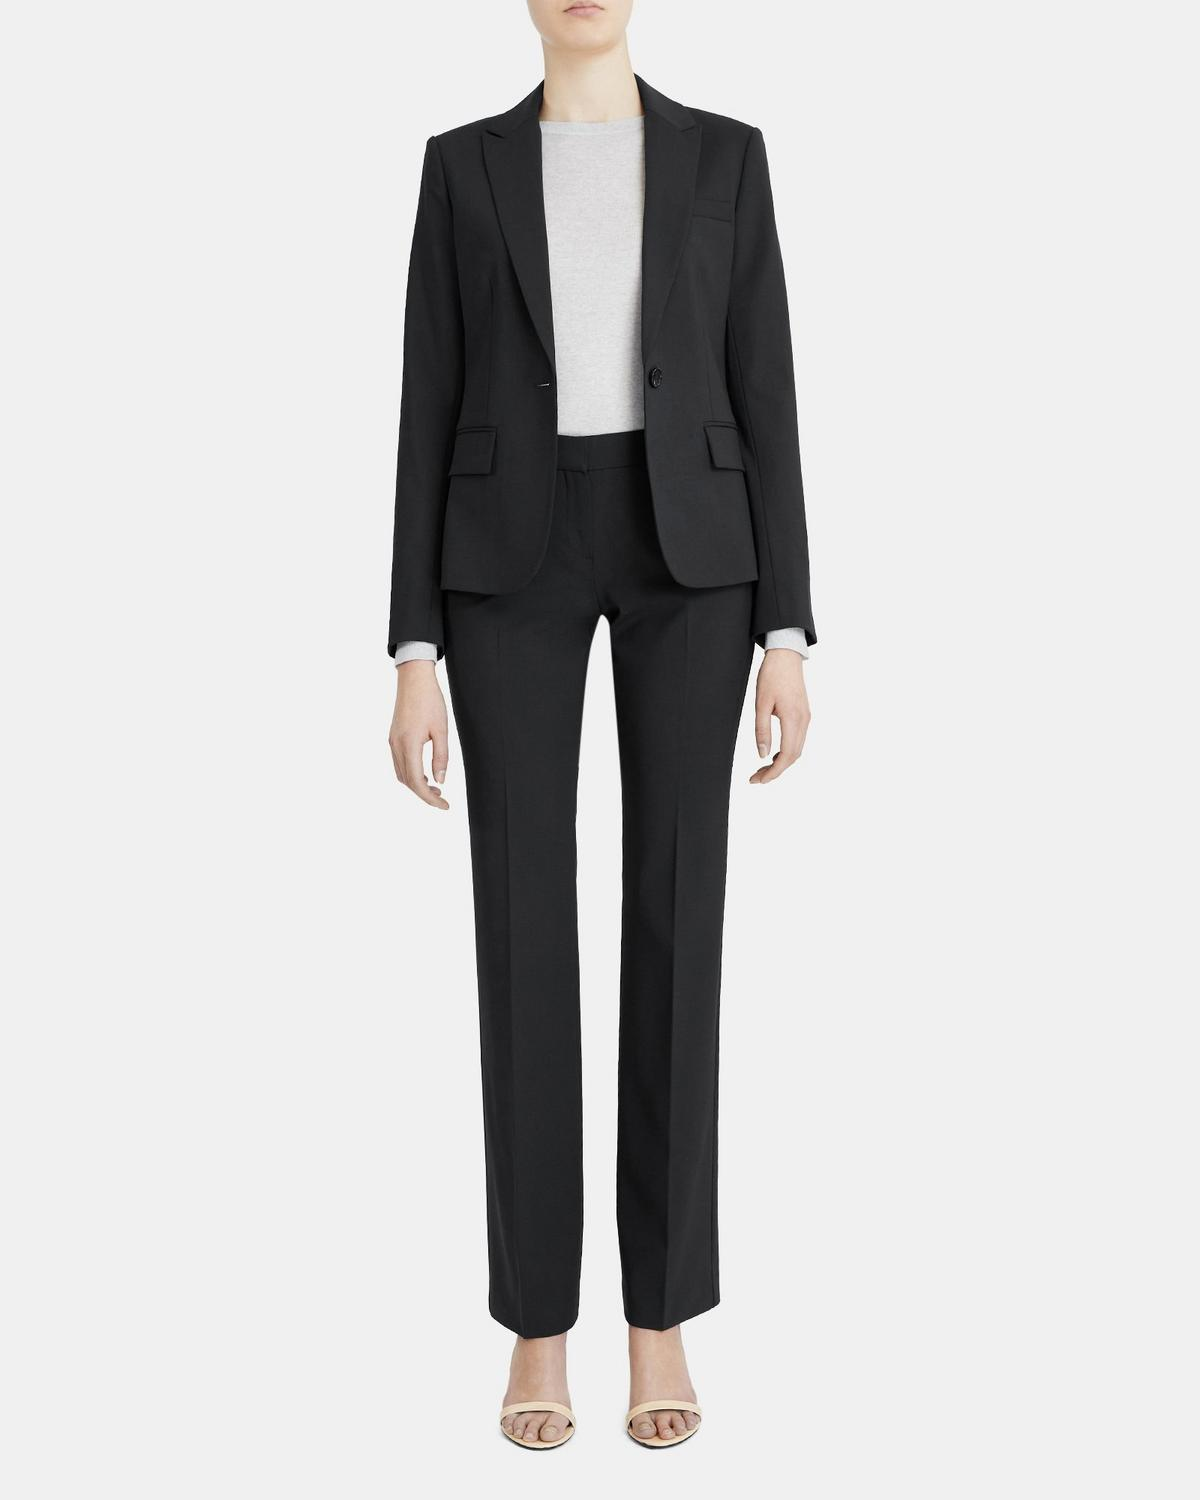 work from home outfit Nordstrom stretch blazer.